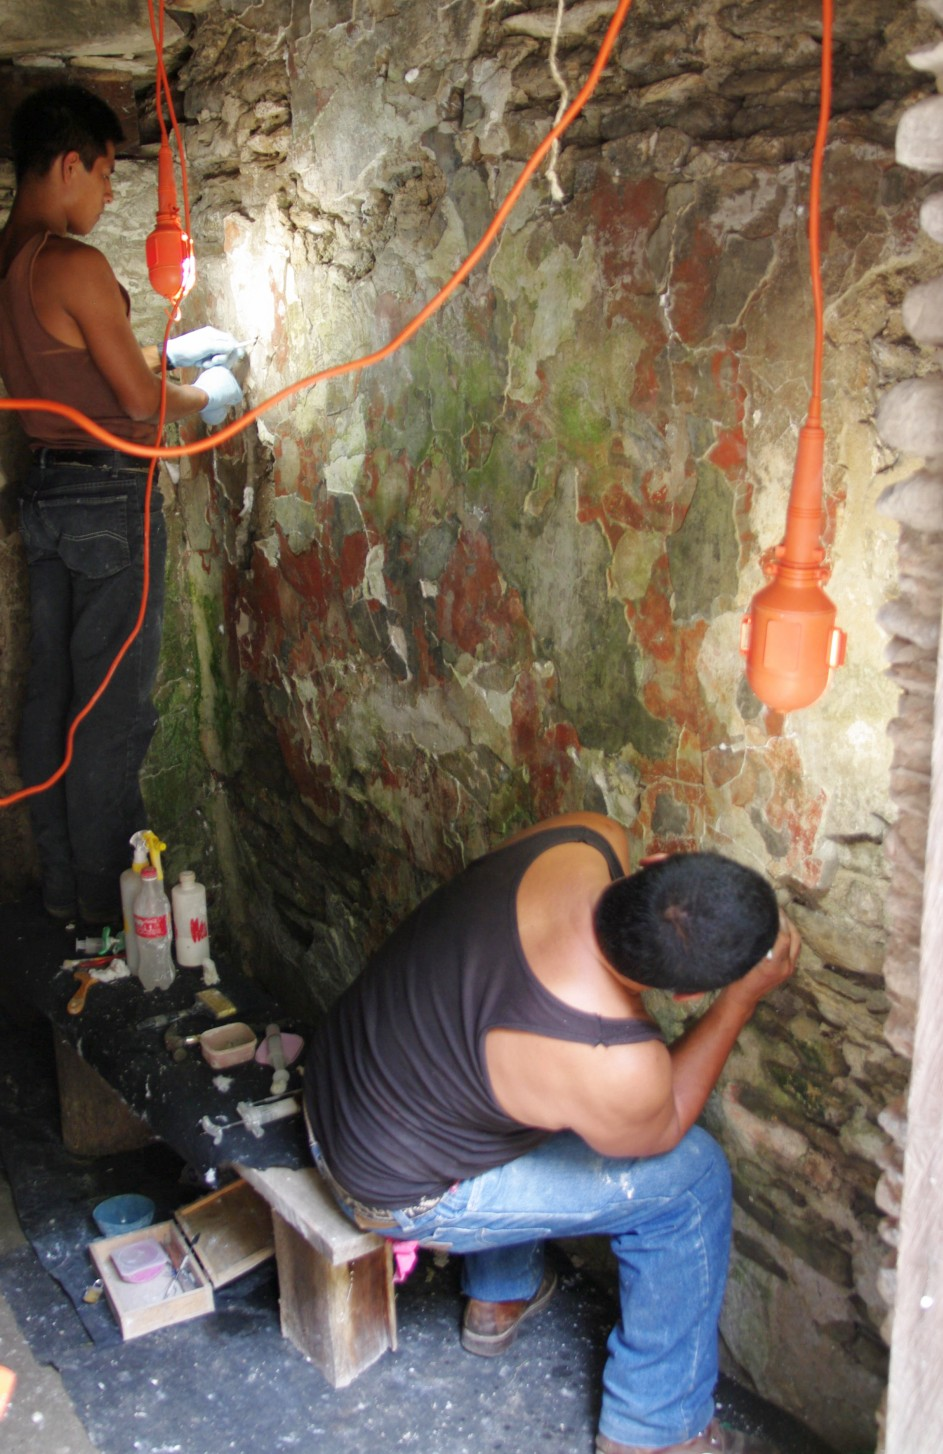 Restoration work of a wall painting in Tonina - Chiapas